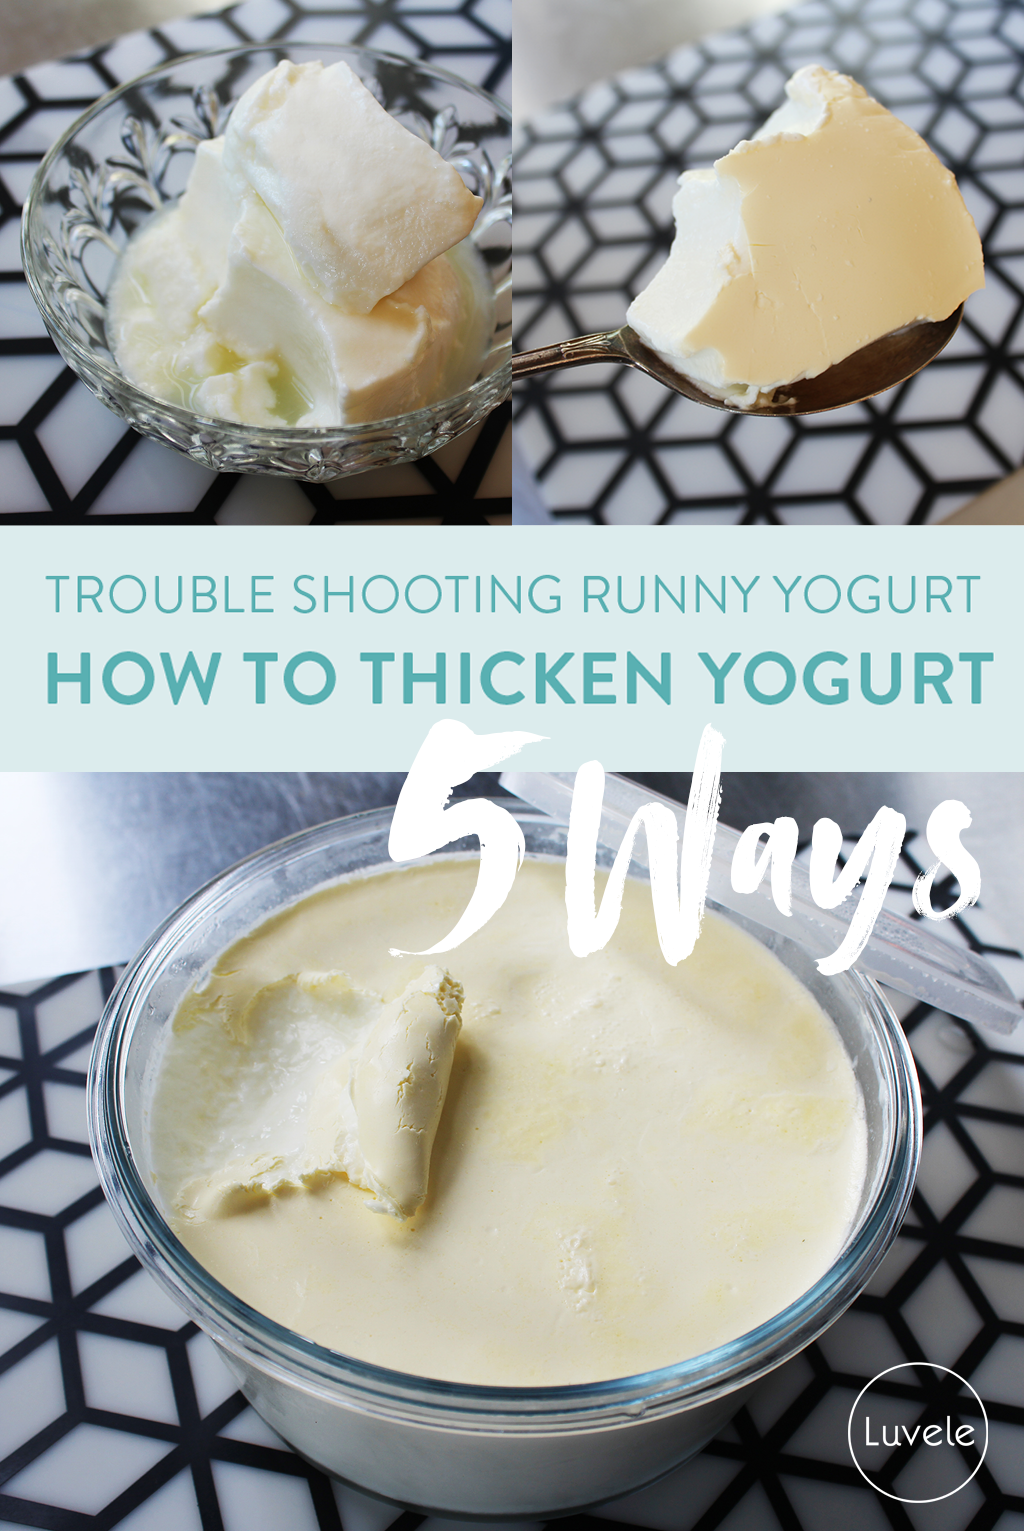 5 ways to thicken homemade yogurt